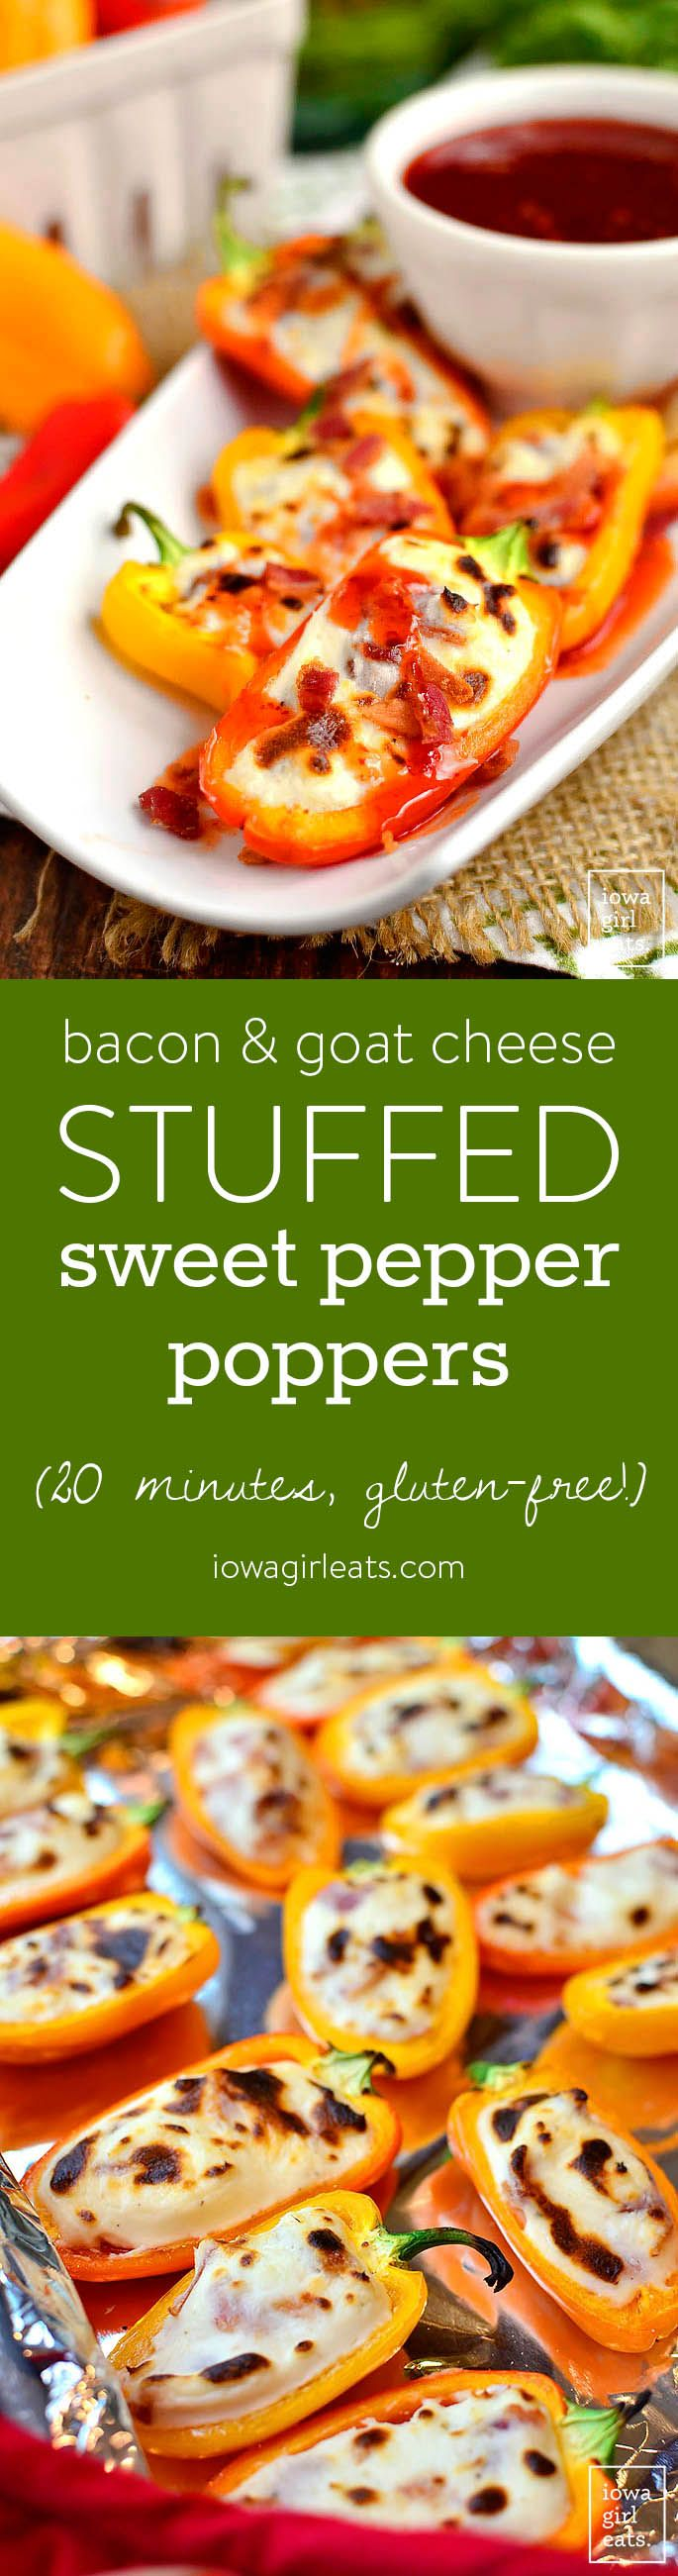 Bacon and Goat Cheese Stuffed Sweet Pepper Poppers are an addicting, 20 minute gluten-free appetizer recipe. Perfect for parties, patios and get-togethers! | iowagirleats.com